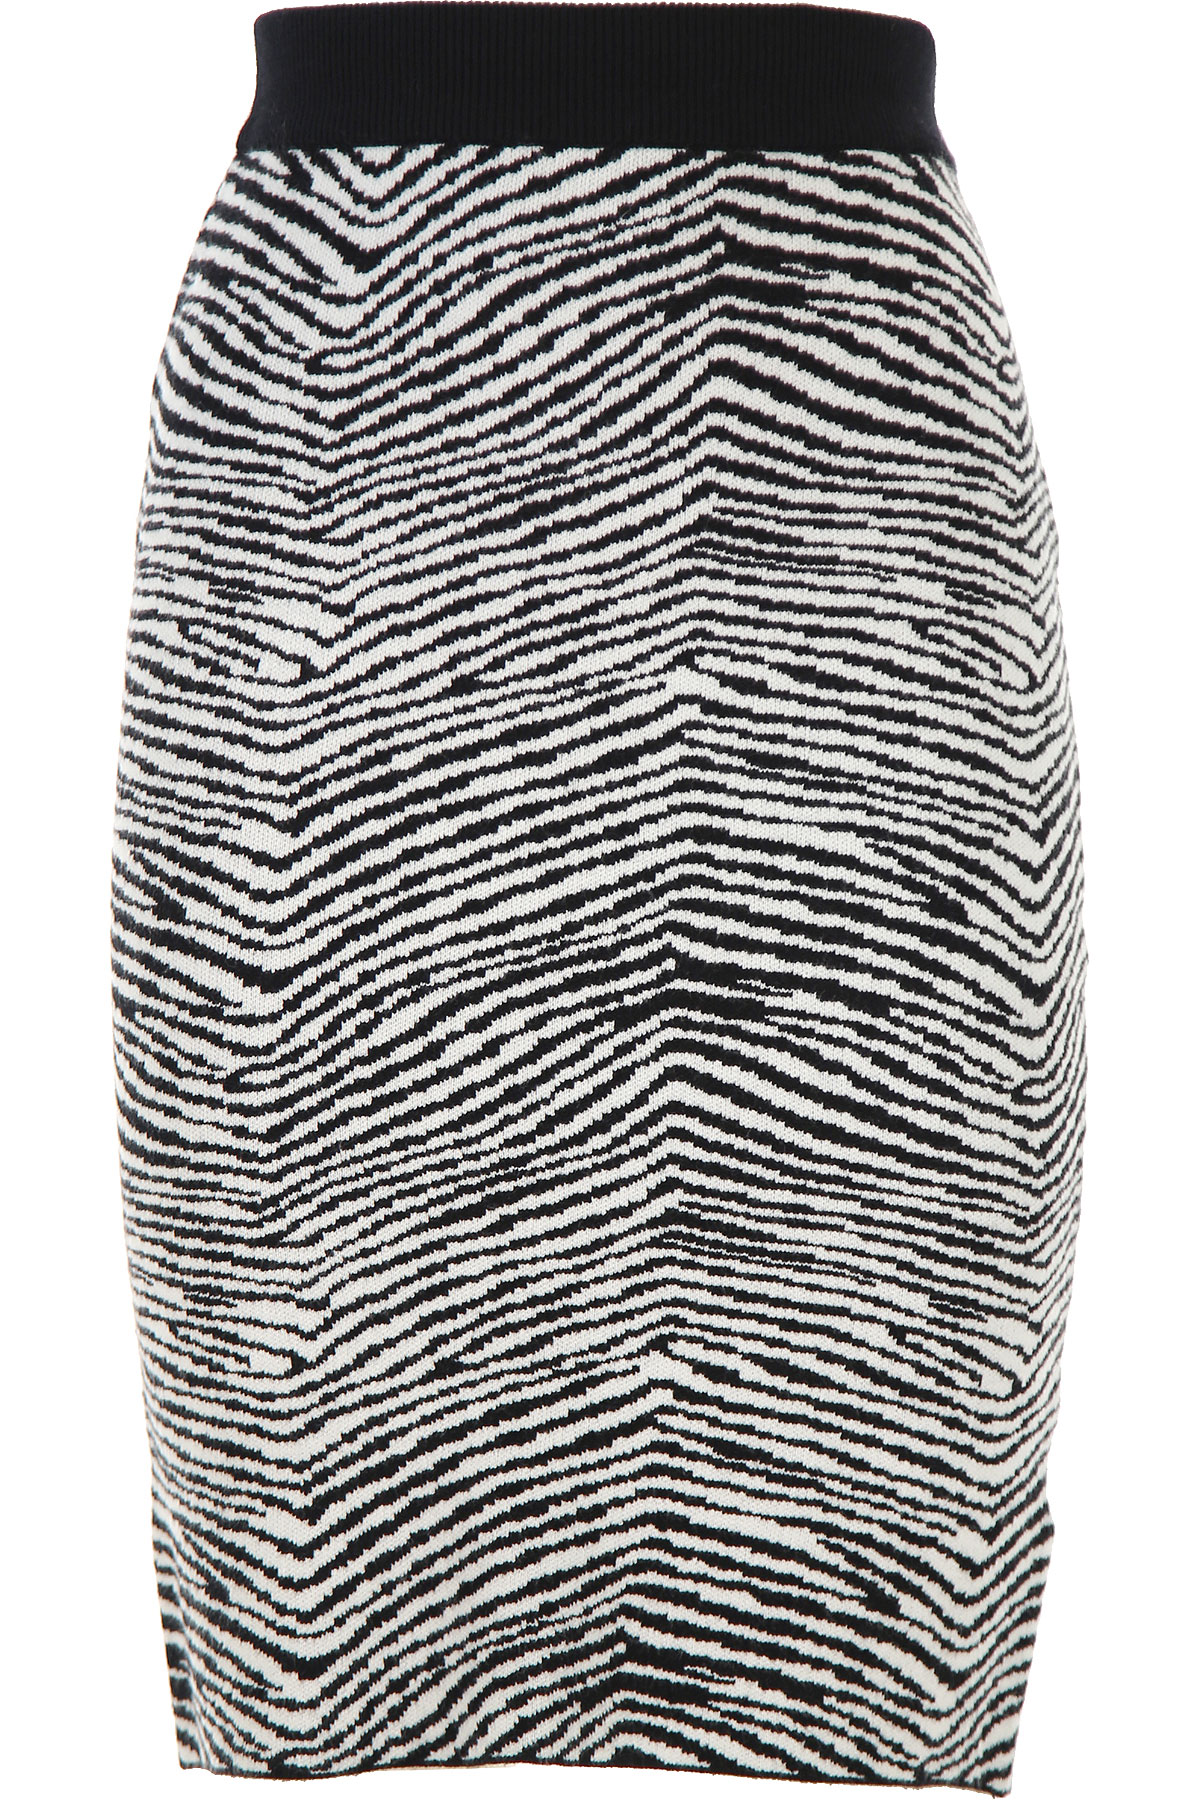 Silvian Heach Skirt for Women, Black, Viscose, 2019, 2 4